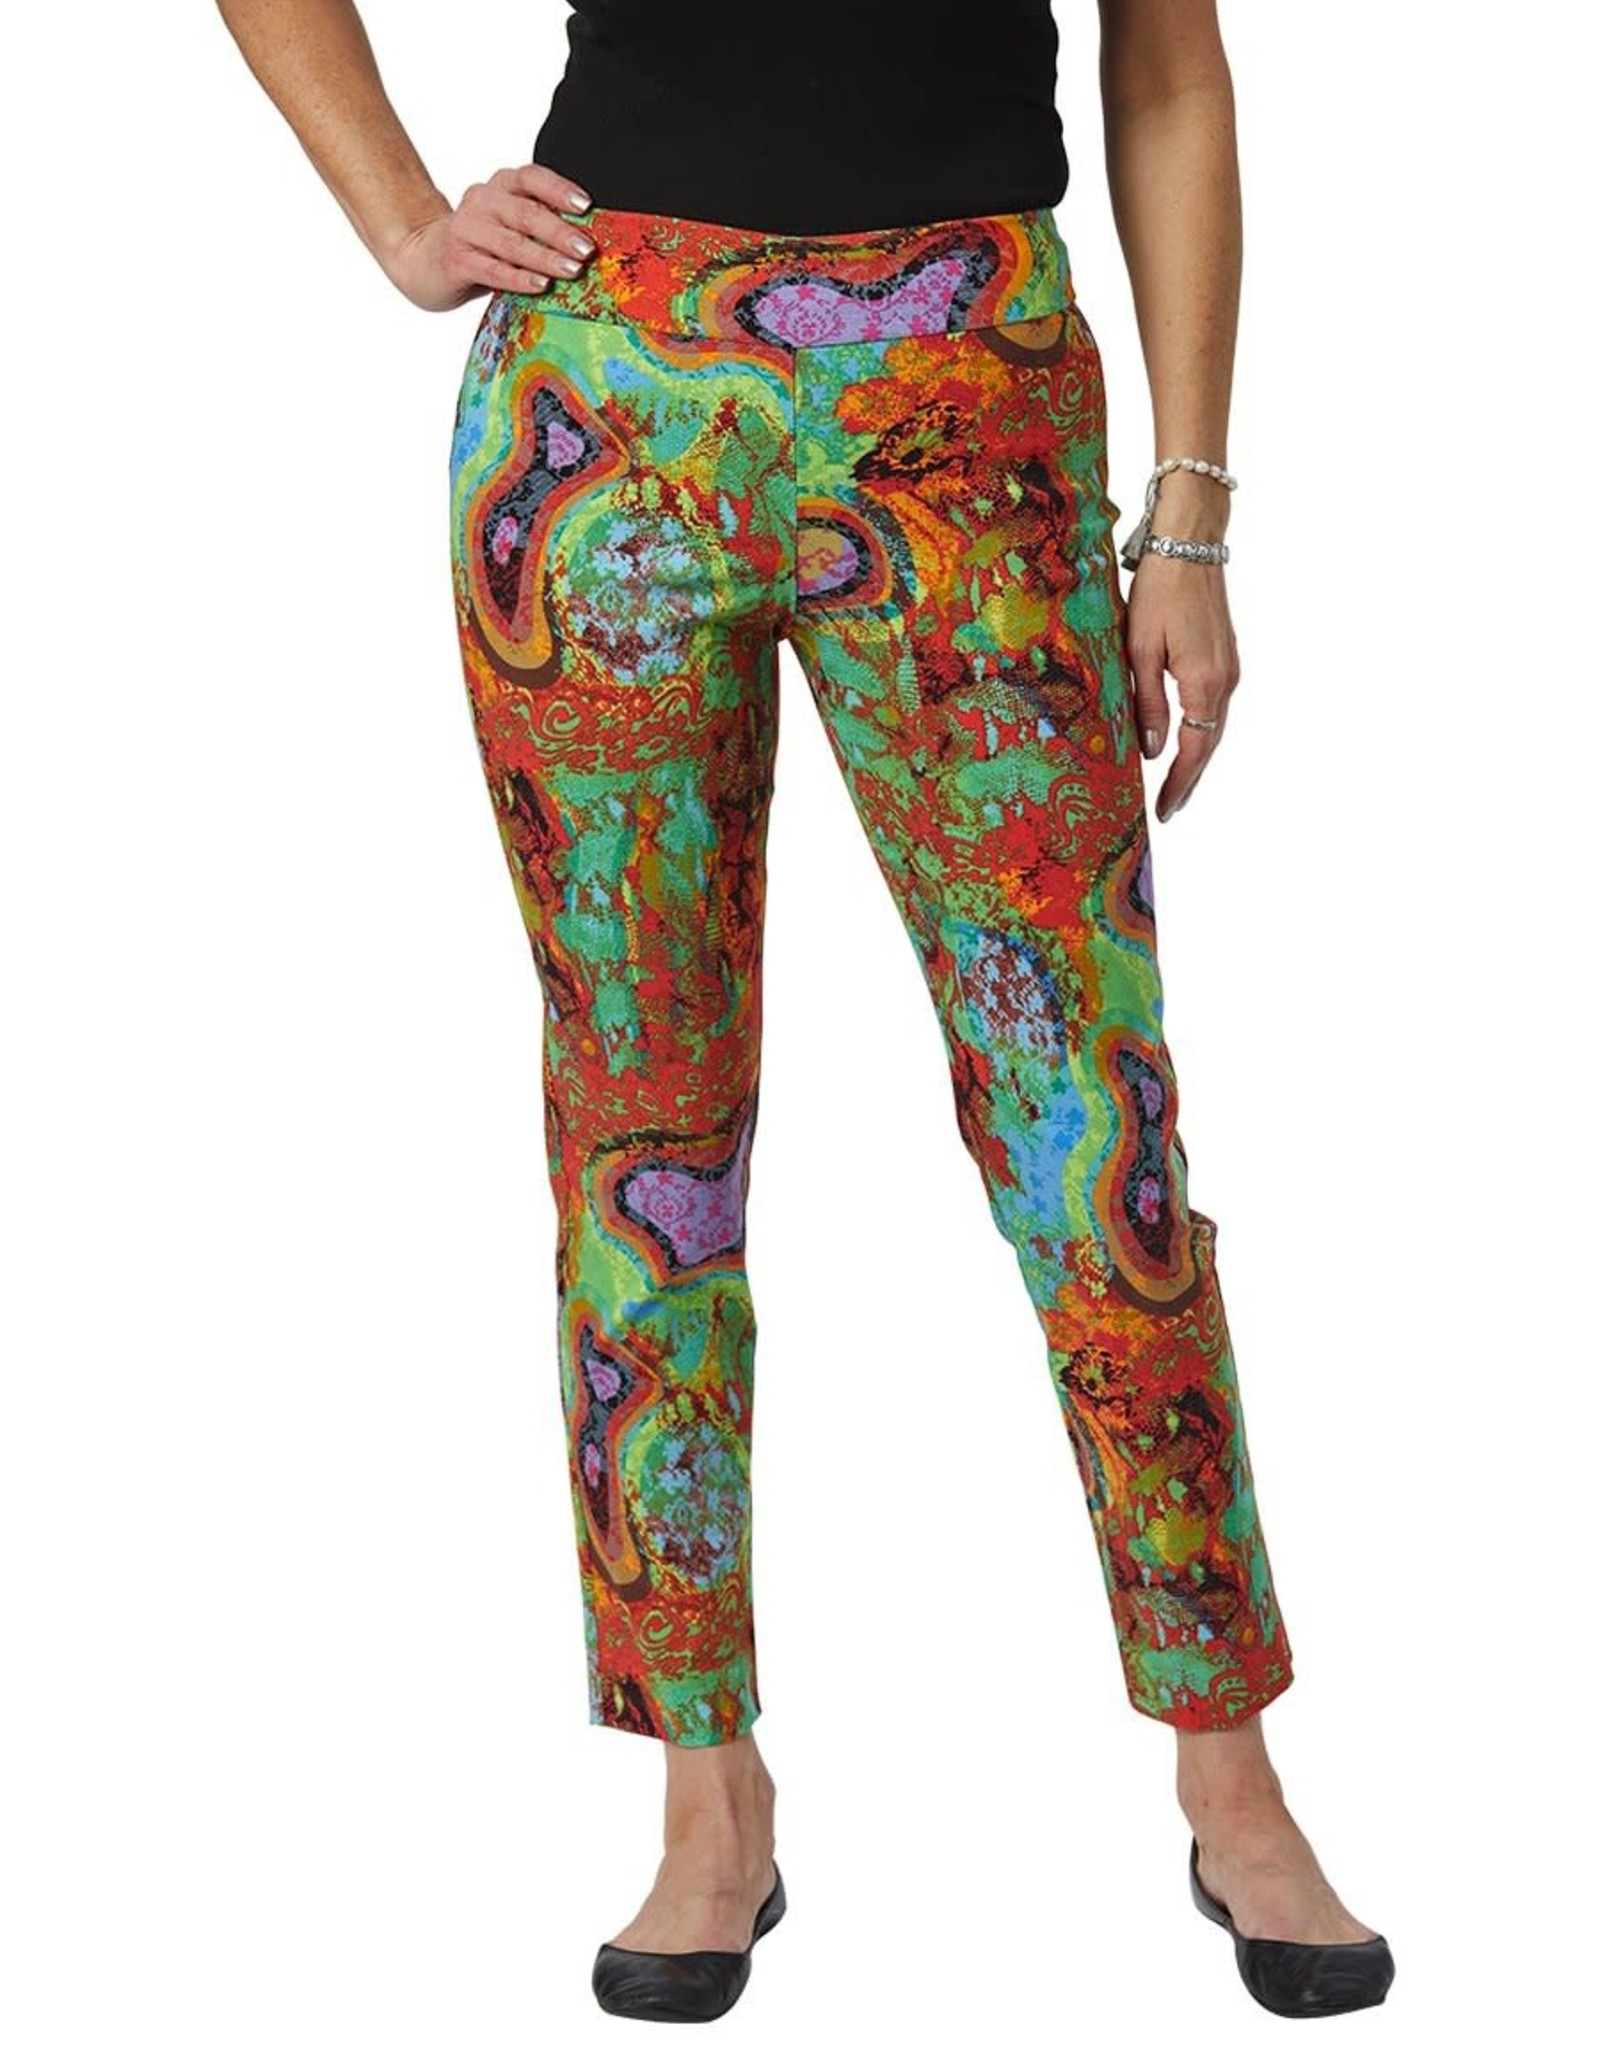 Krazy Larry Pant Krazy Larry's Party Pull on Pant